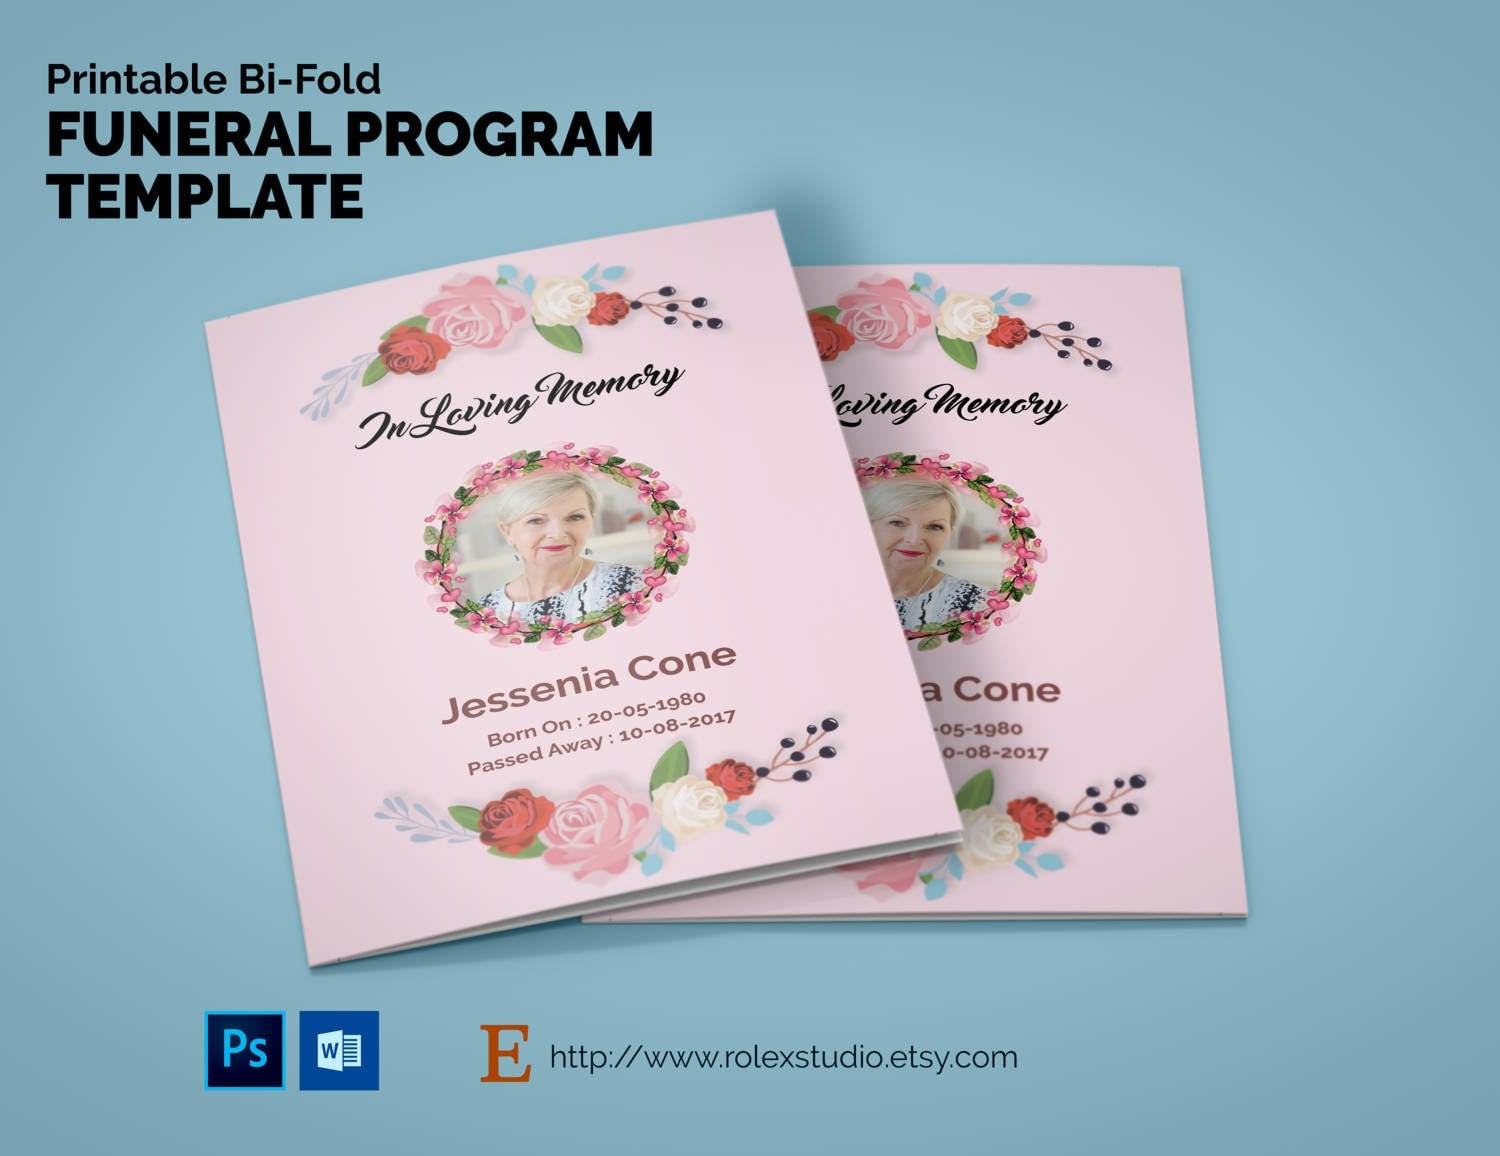 free editable funeral program template microsoft word - printable bi fold funeral program template obituary template